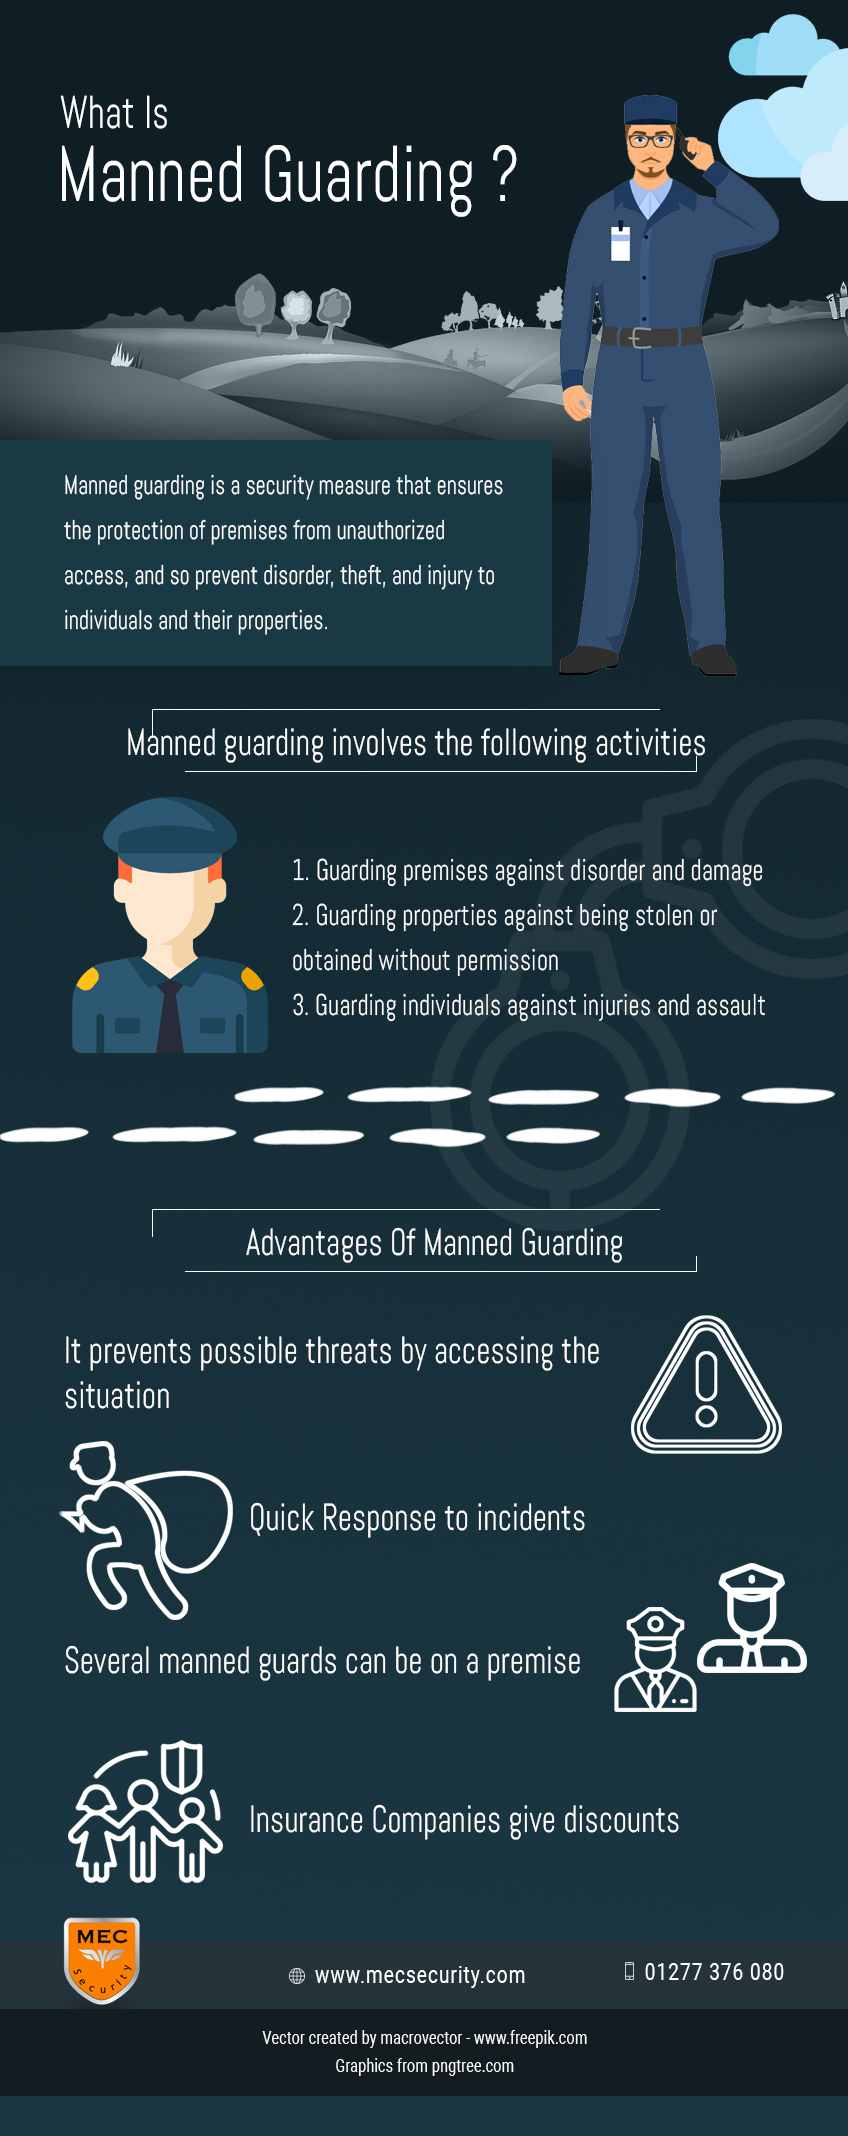 manned guarding infographic